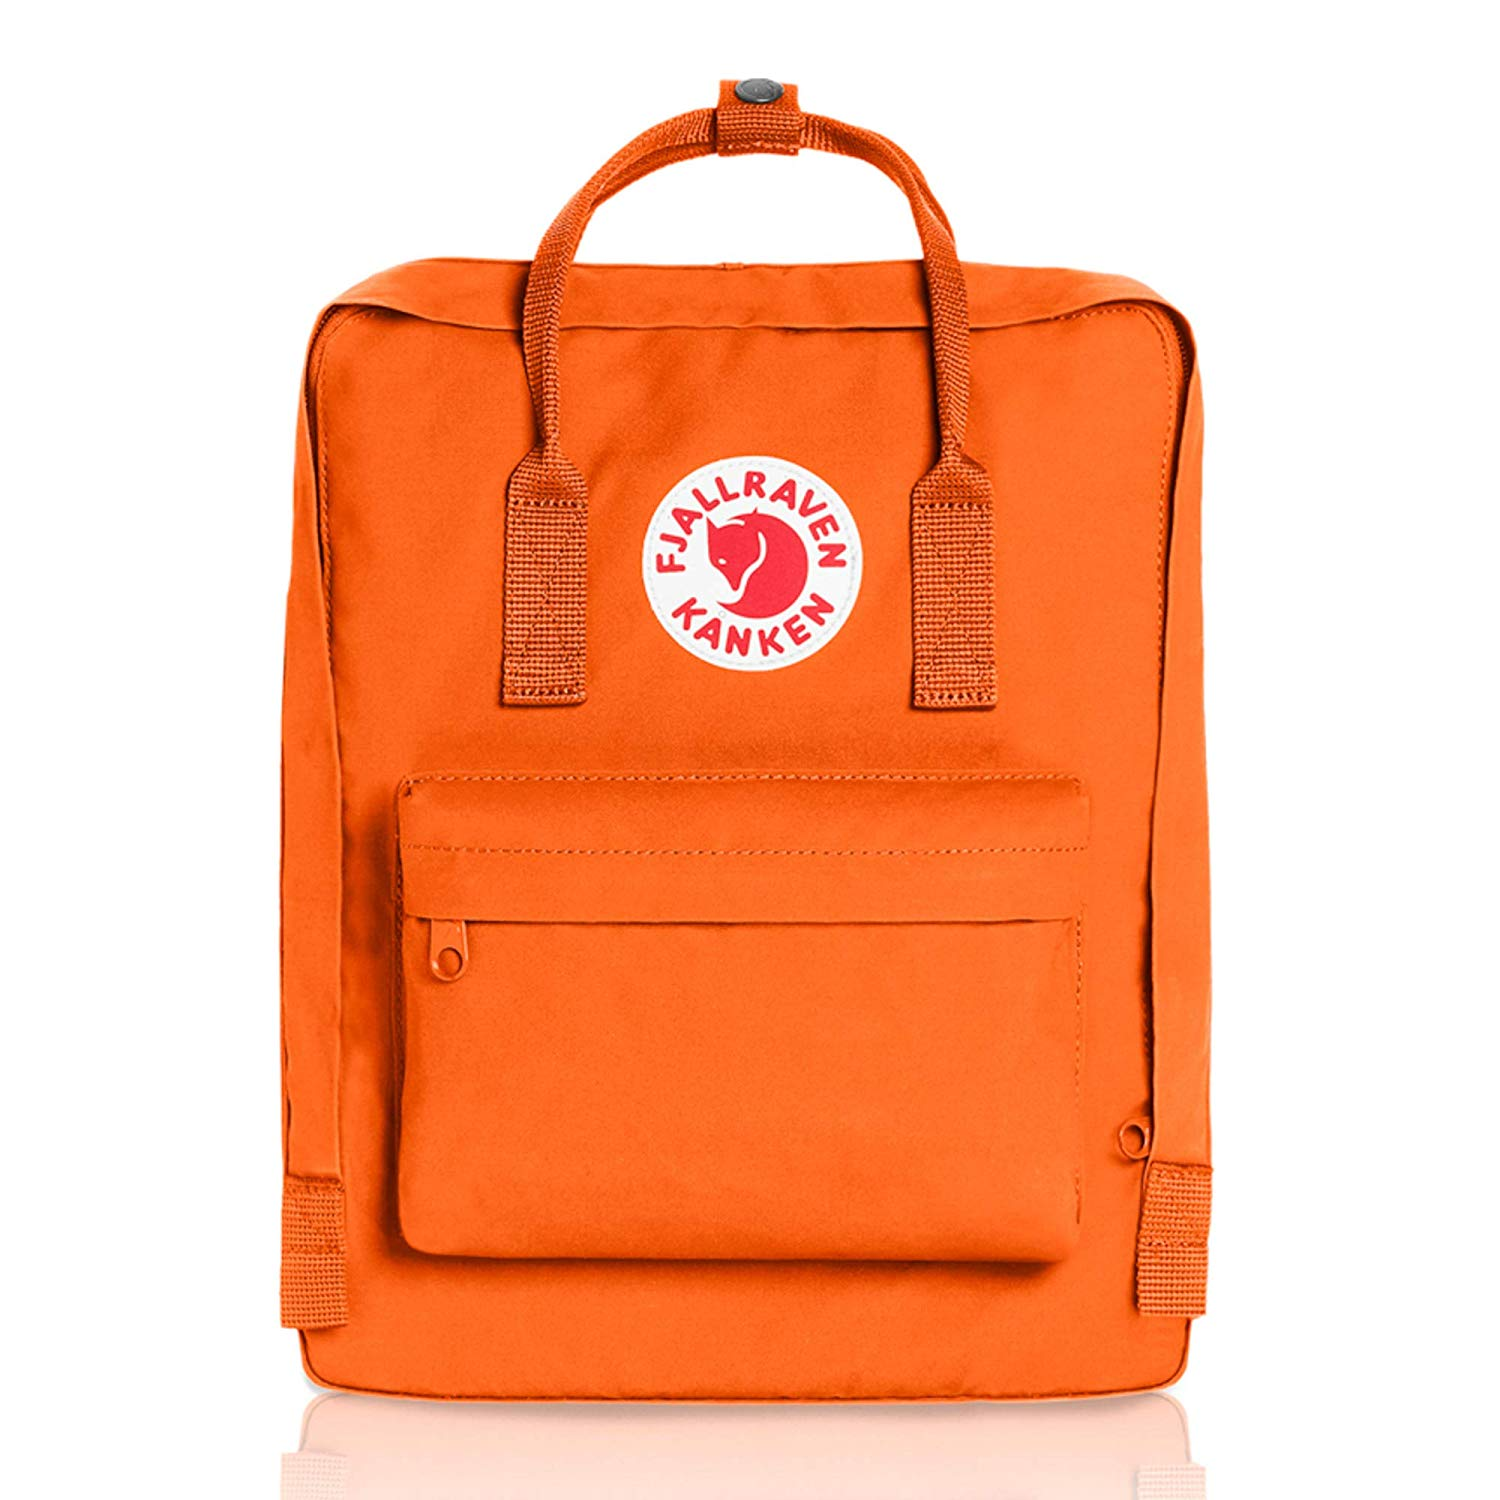 Fjallraven - Kanken Classic Backpack for Everyday - Burnt Orange